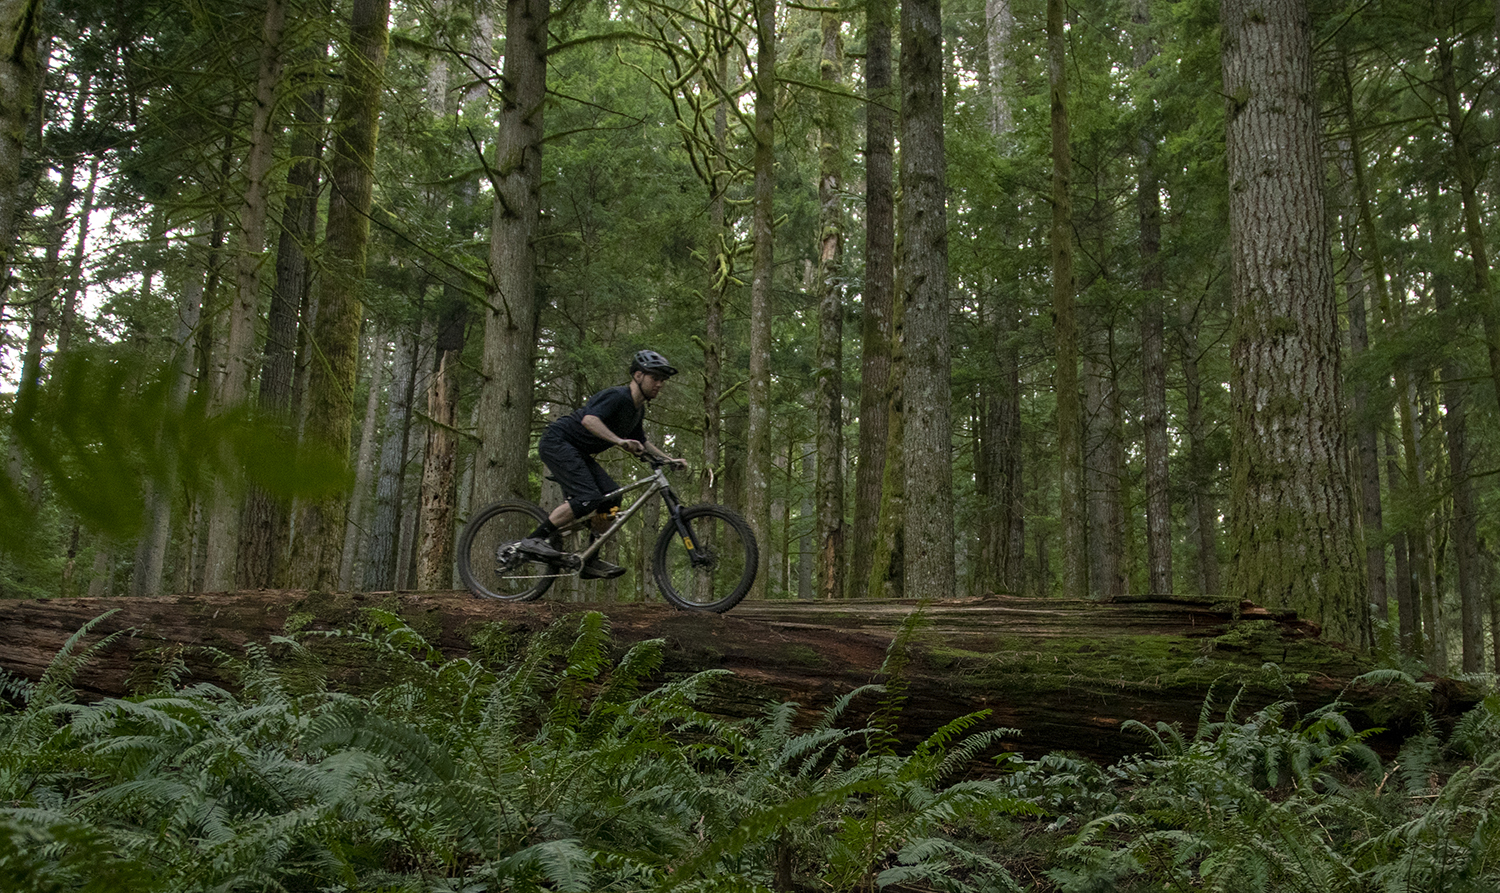 David Golay reviews the Ohlins RXF36 m.2 for Blister